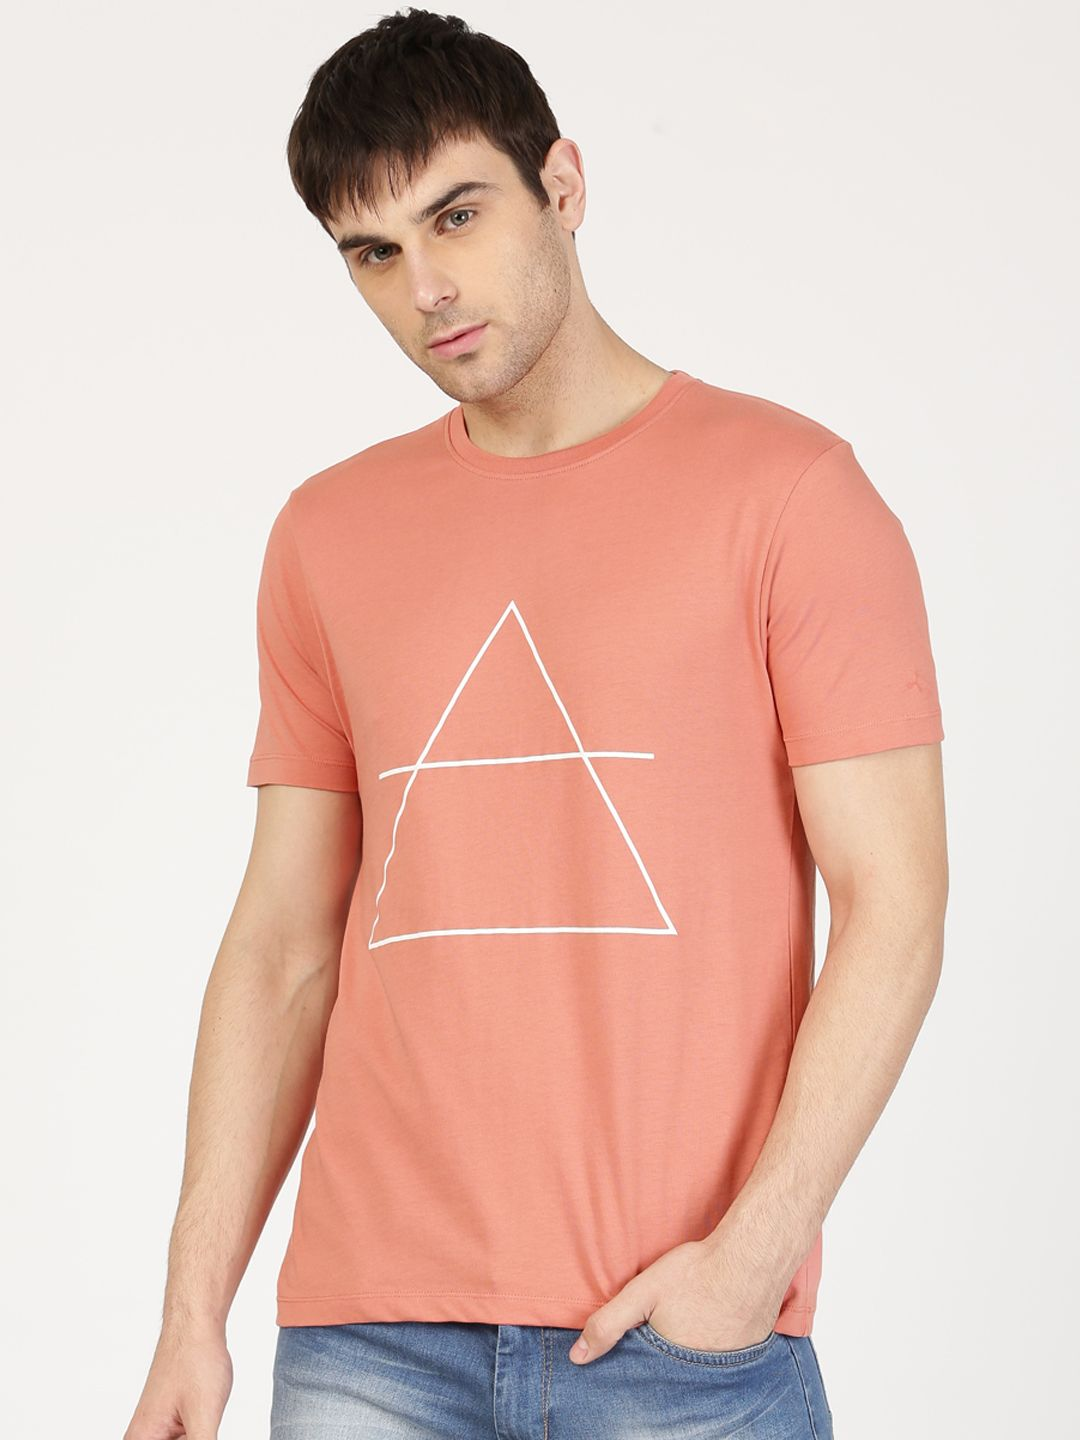 9a854ff050 ether Men Peach-Coloured Printed Round Neck T-shirt - | 349 | Men's ...